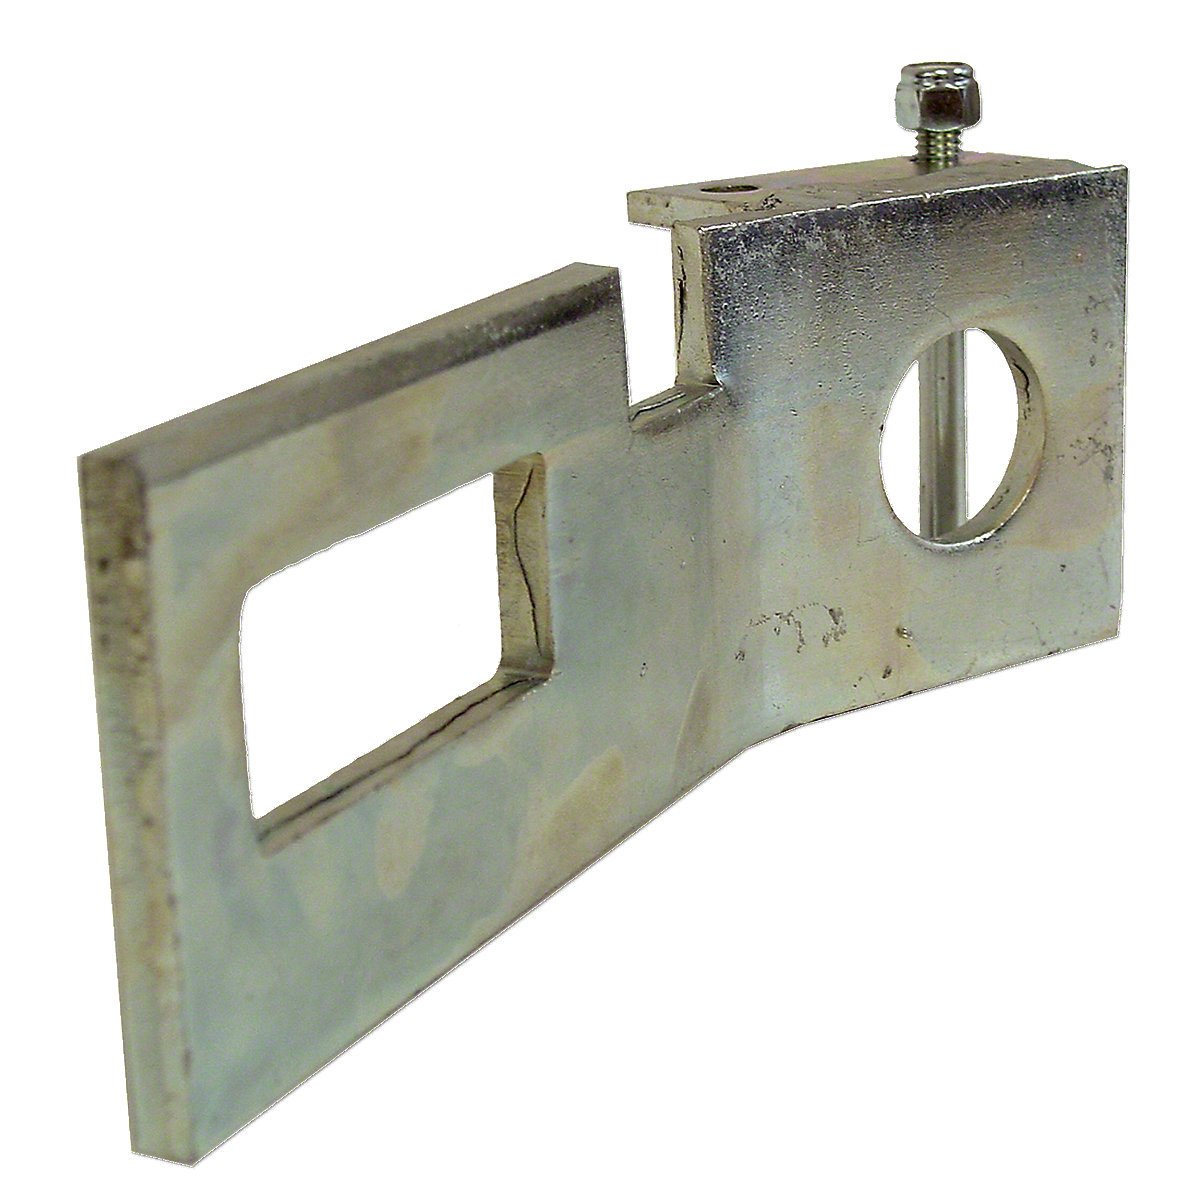 Category 1 Draw Bar Lock For Allis Chalmers: D10, D12, D15, ED40, I40, I400, I60, I600, 160, 5015, 5020, 5030, 5040, 5045, 5050, 6040, 6140.